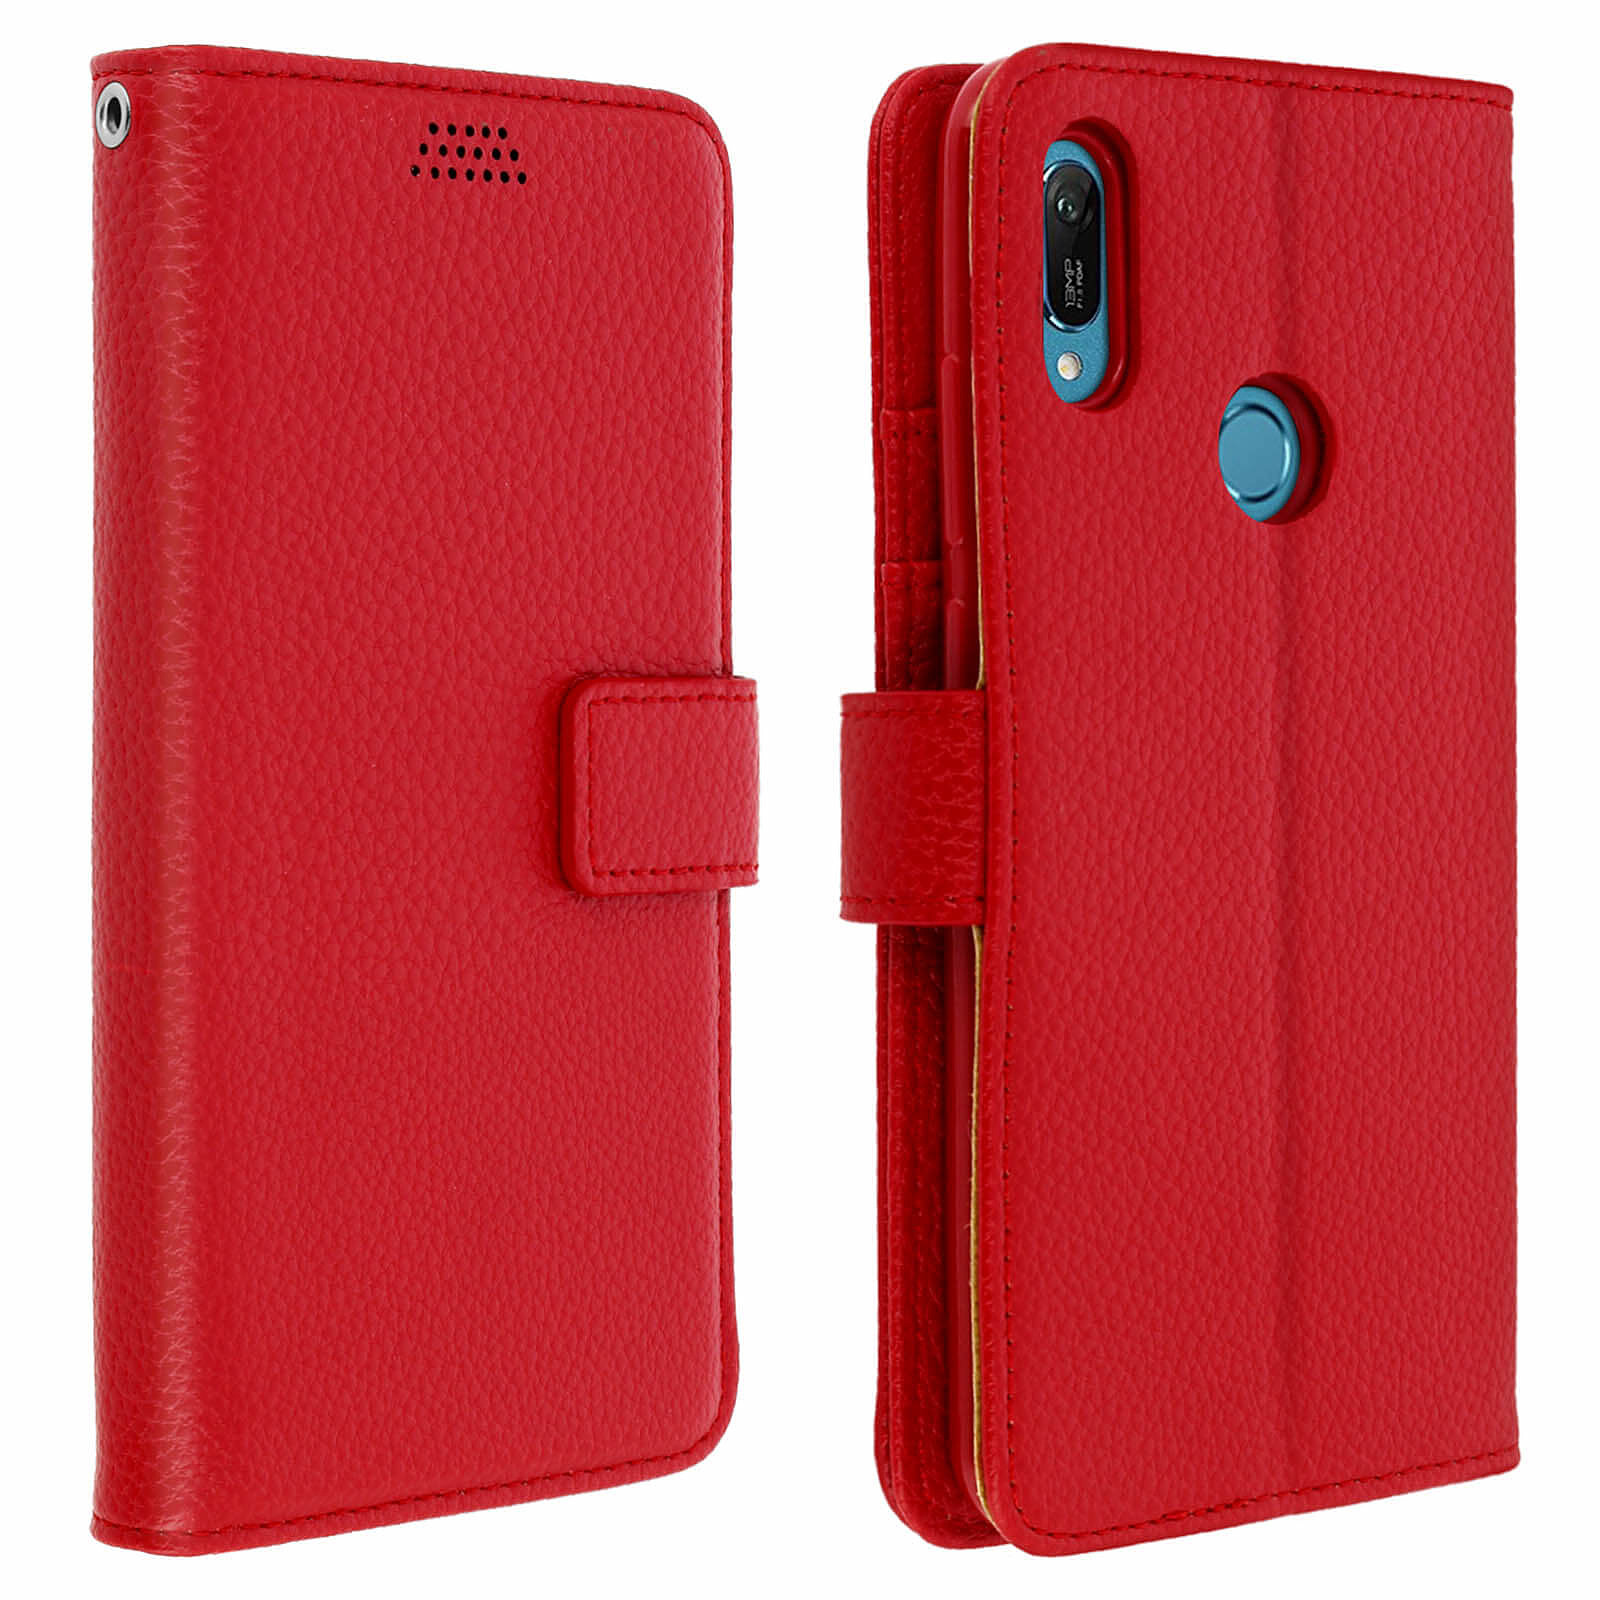 Avizar Etui folio Rouge pour Honor 8A , Huawei Y6 2019 , Huawei Y6S